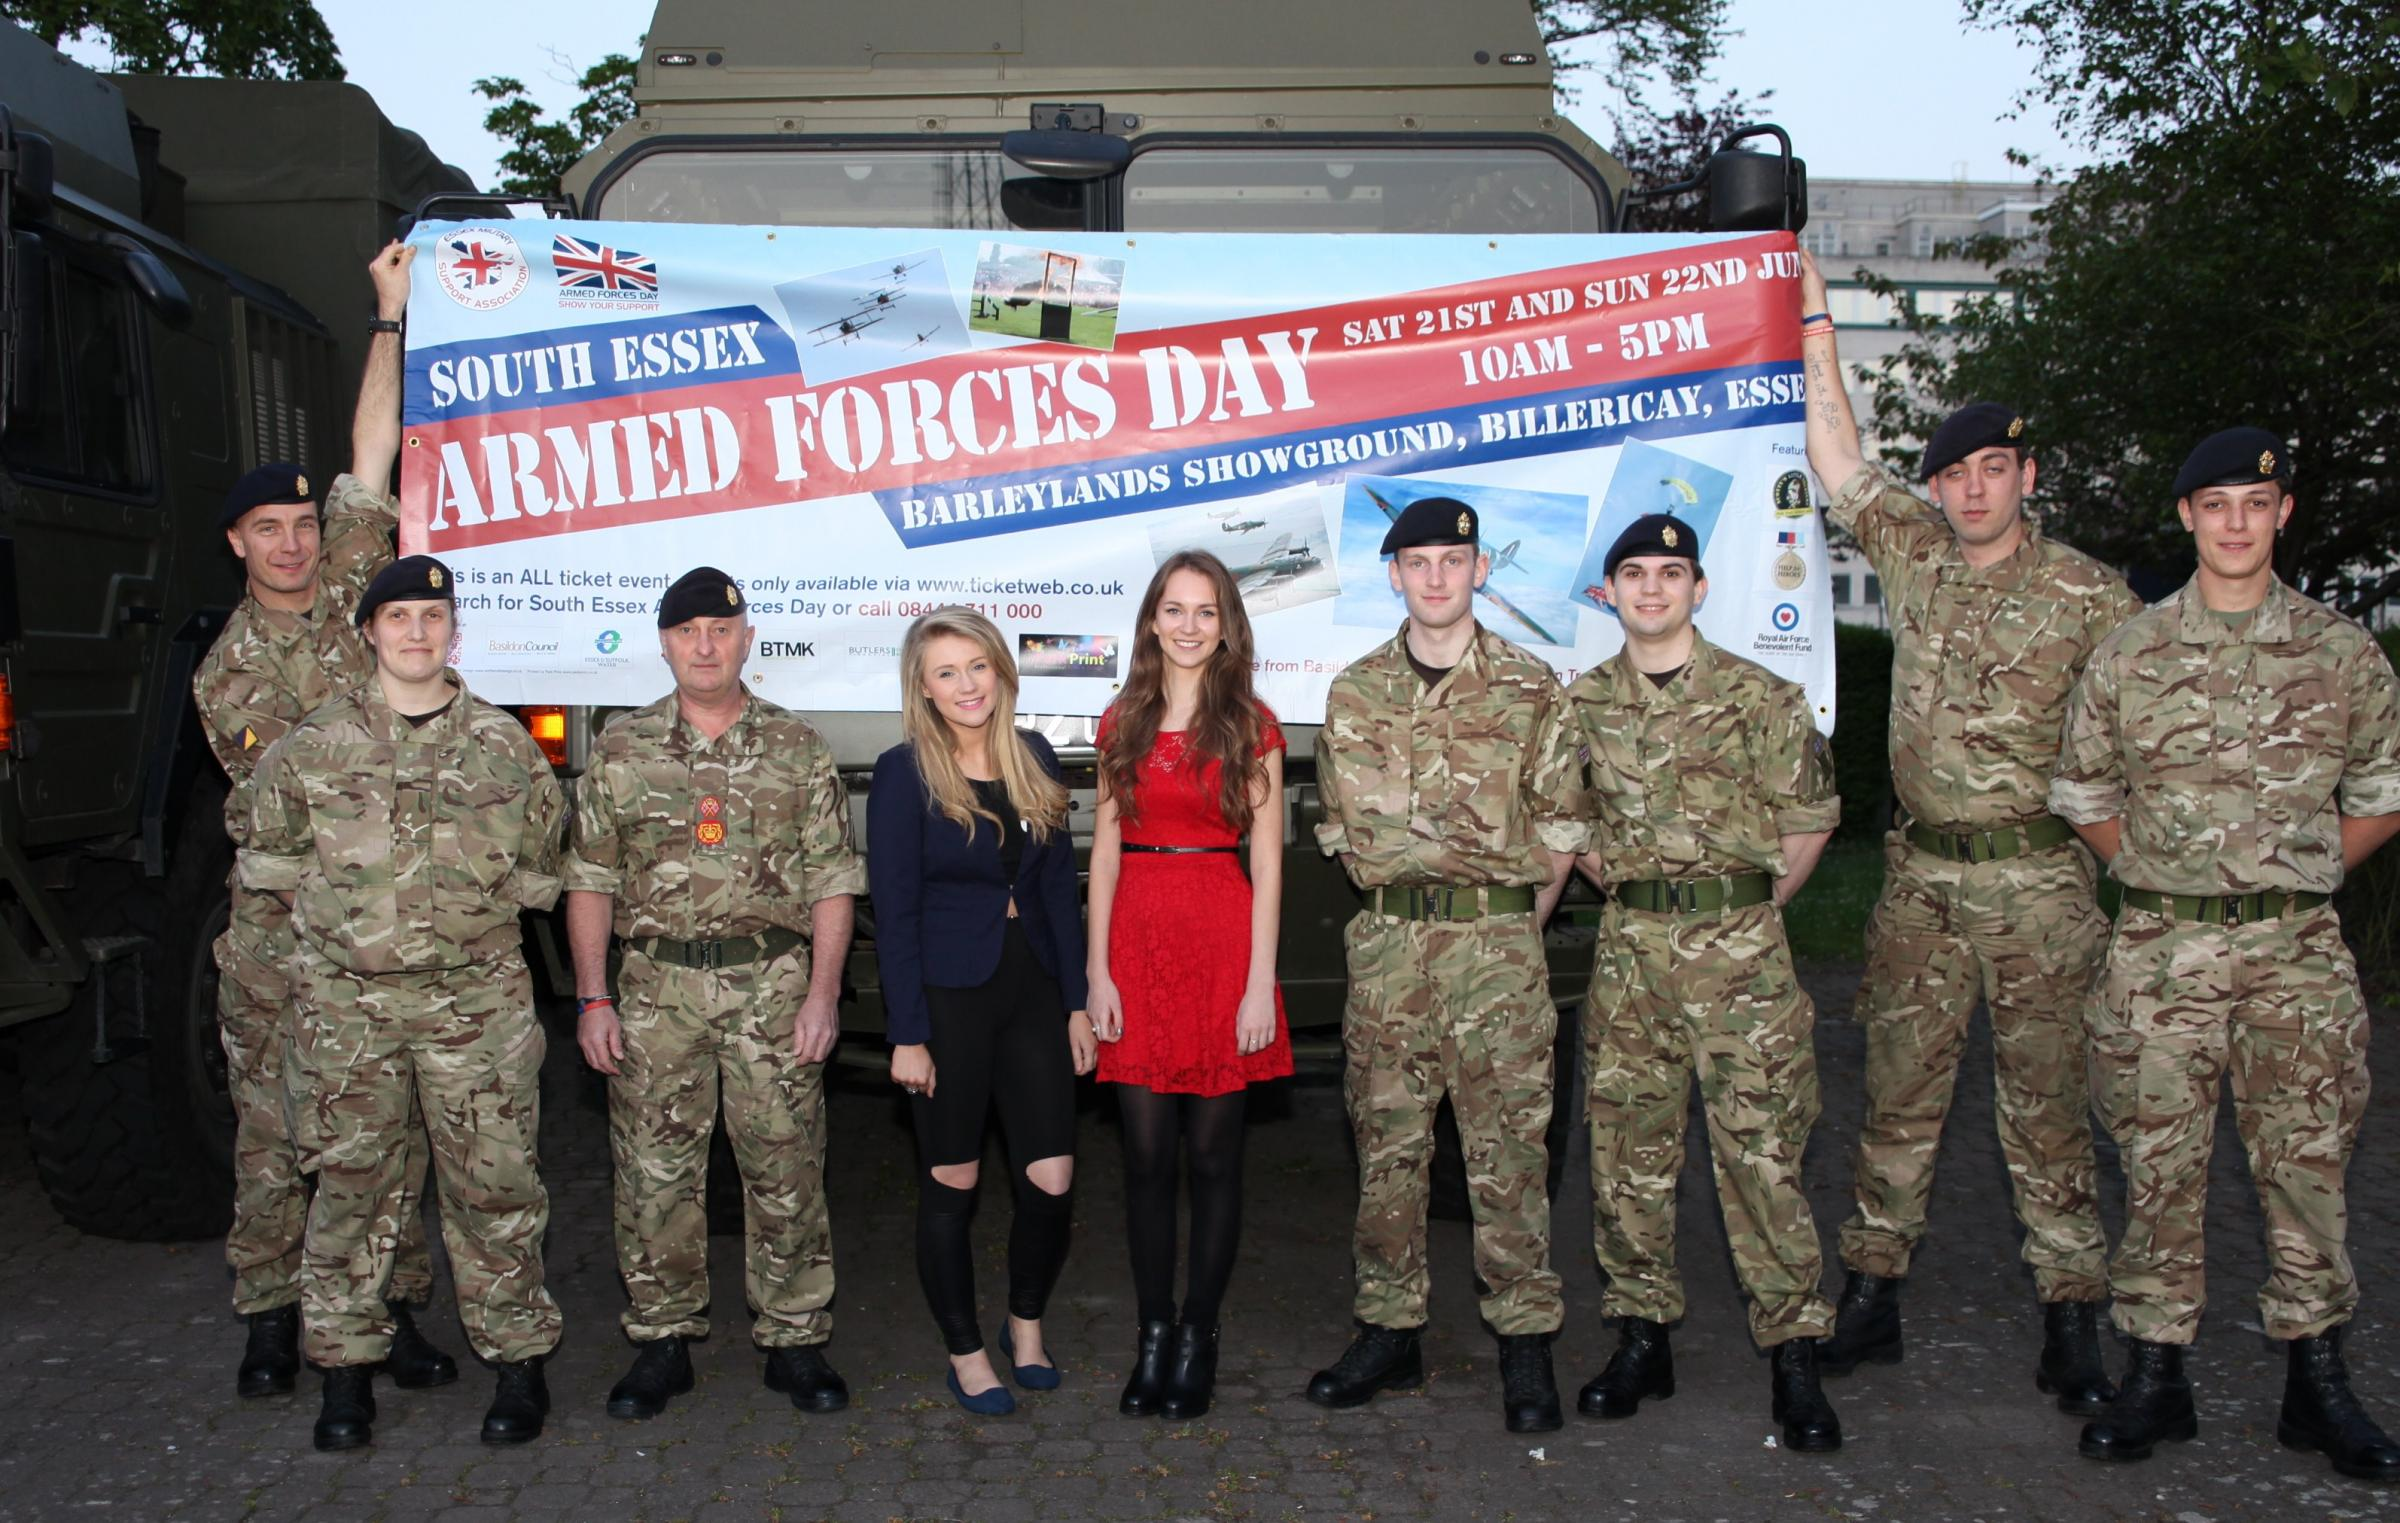 Big event – singers Luciee Closier and Marilena Gant with troops from 151 Essex Regiment, Royal Logistic Corps, based at Brentwood